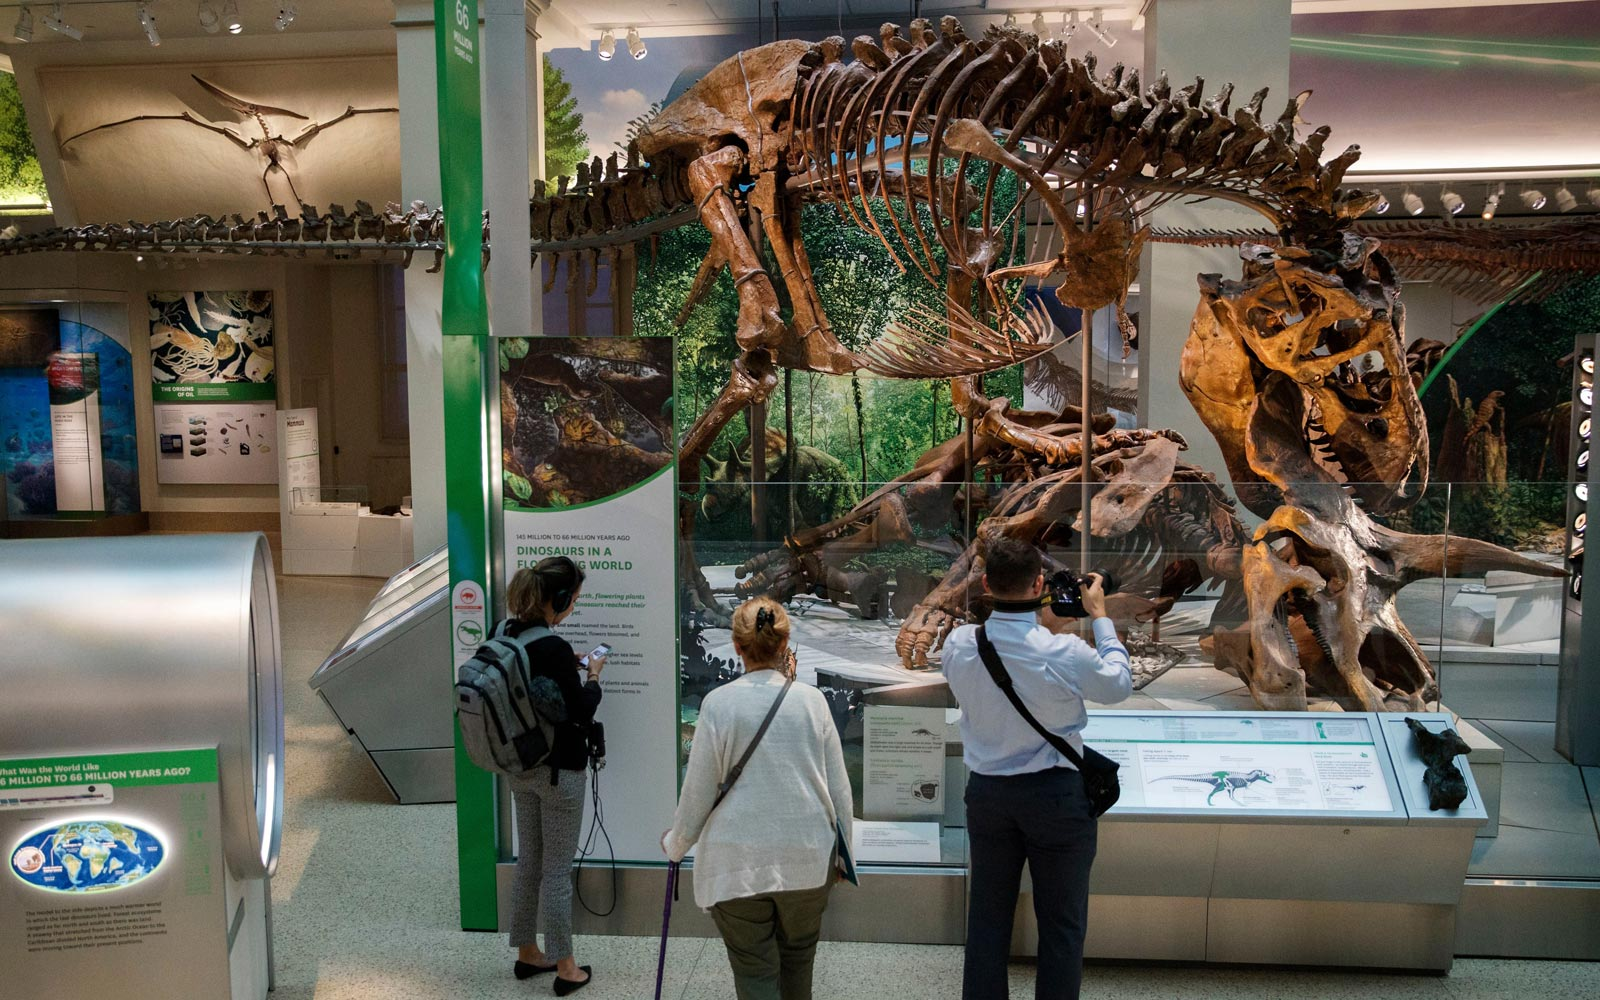 The Tyrannosaurus rex exhibit in the 'The David H. Koch Hall of Fossils-Deep Time' at the Smithsonian Institute National Museum of Natural History in Washington, DC